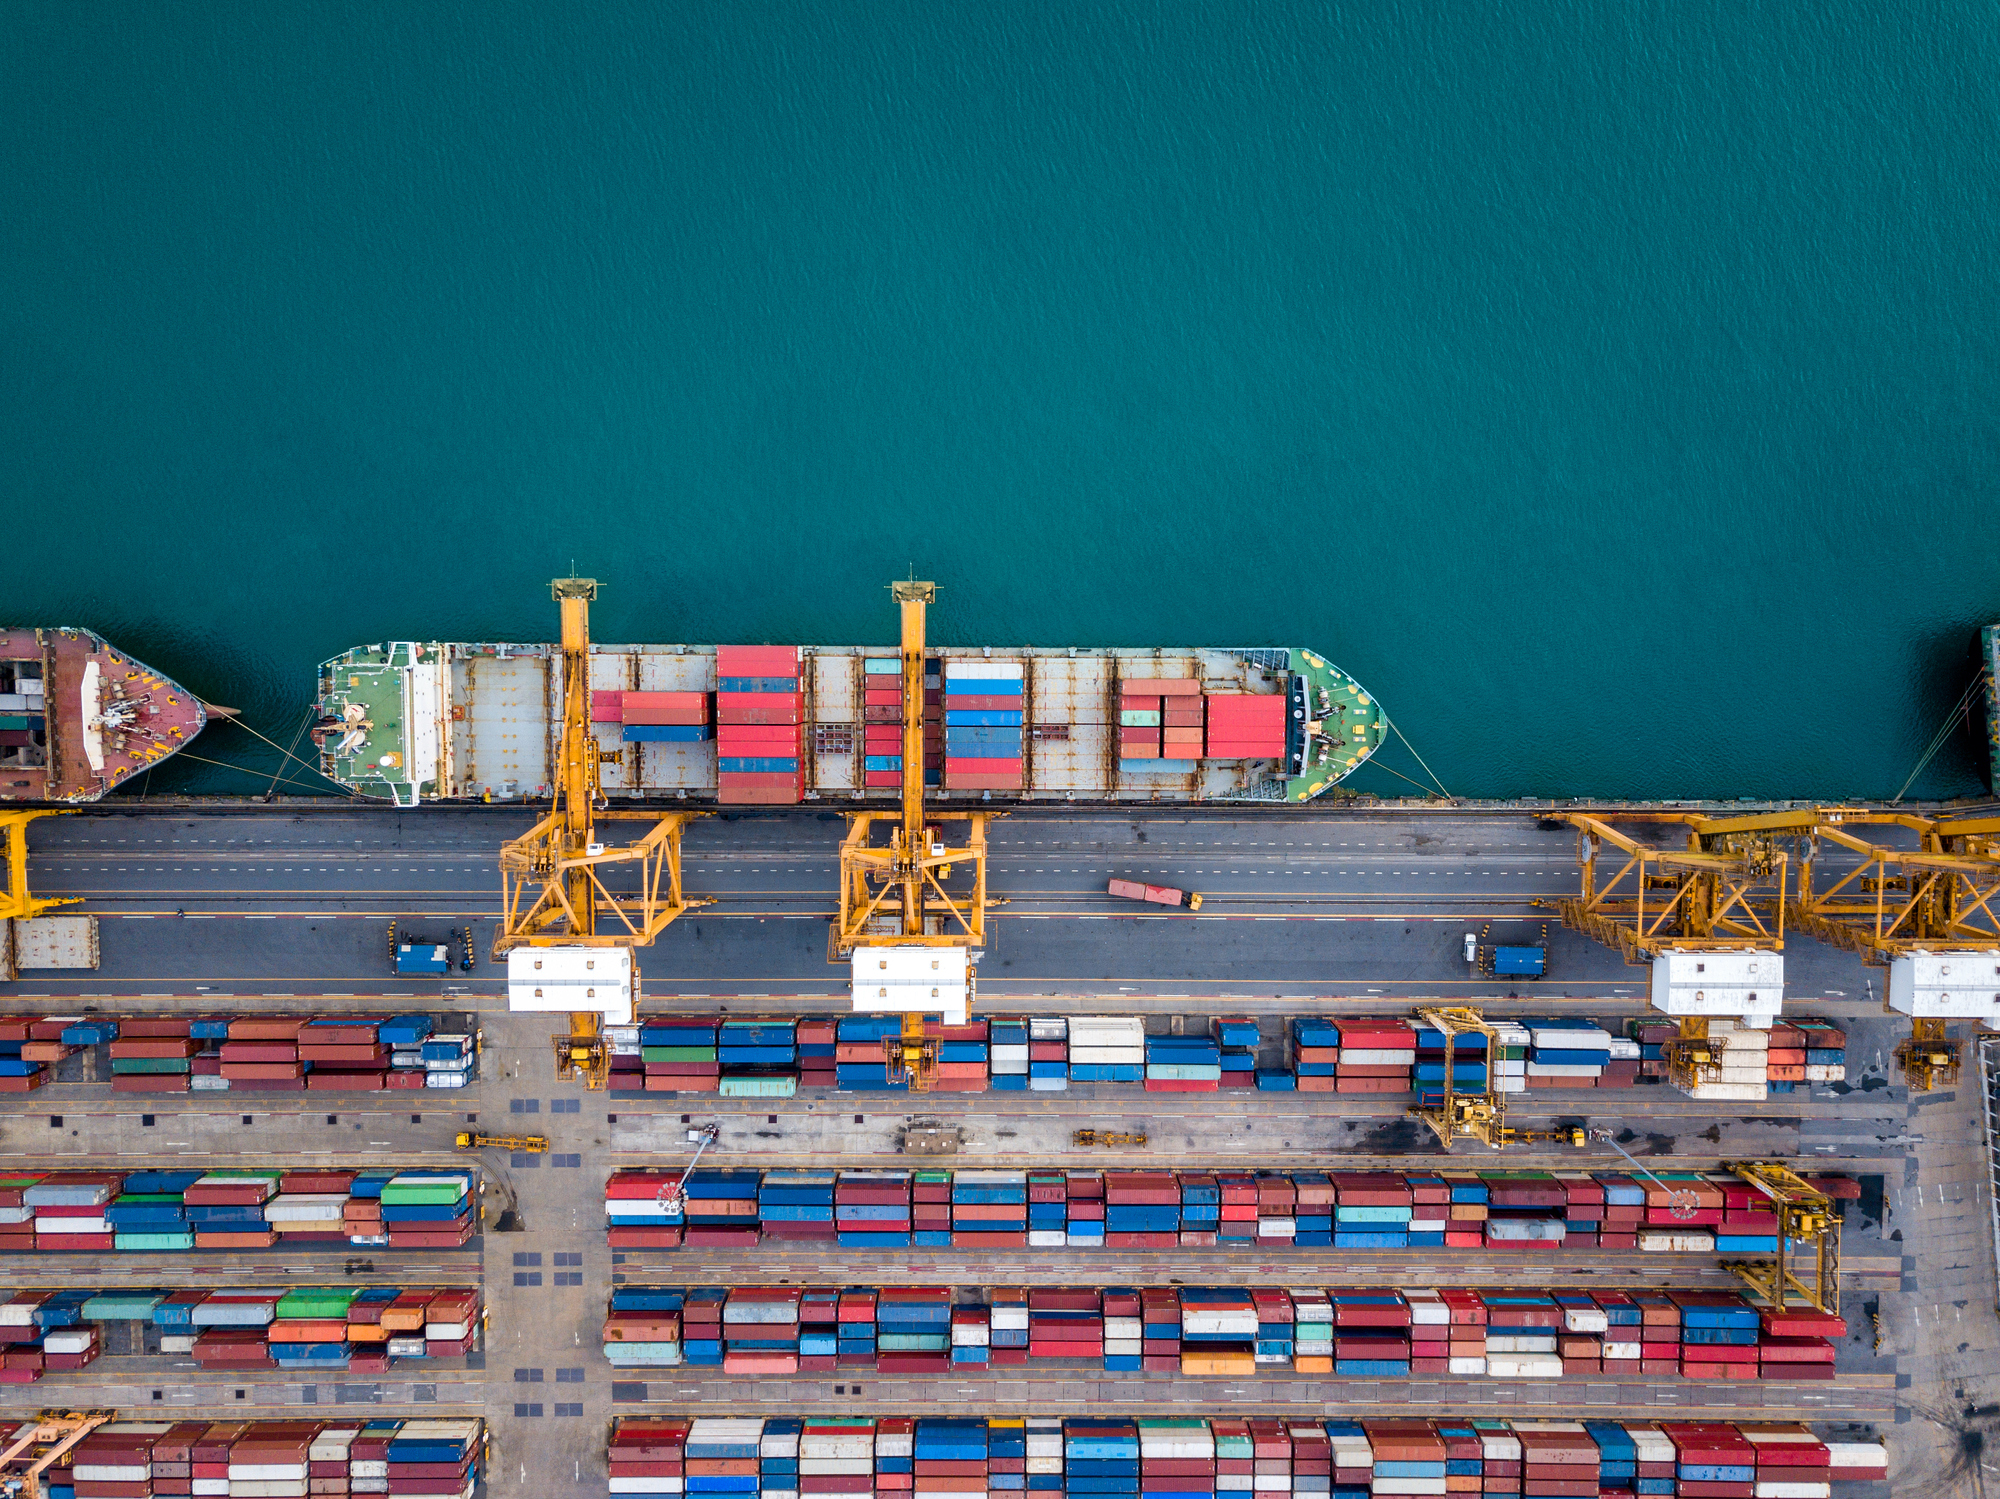 Shipping containers and cranes